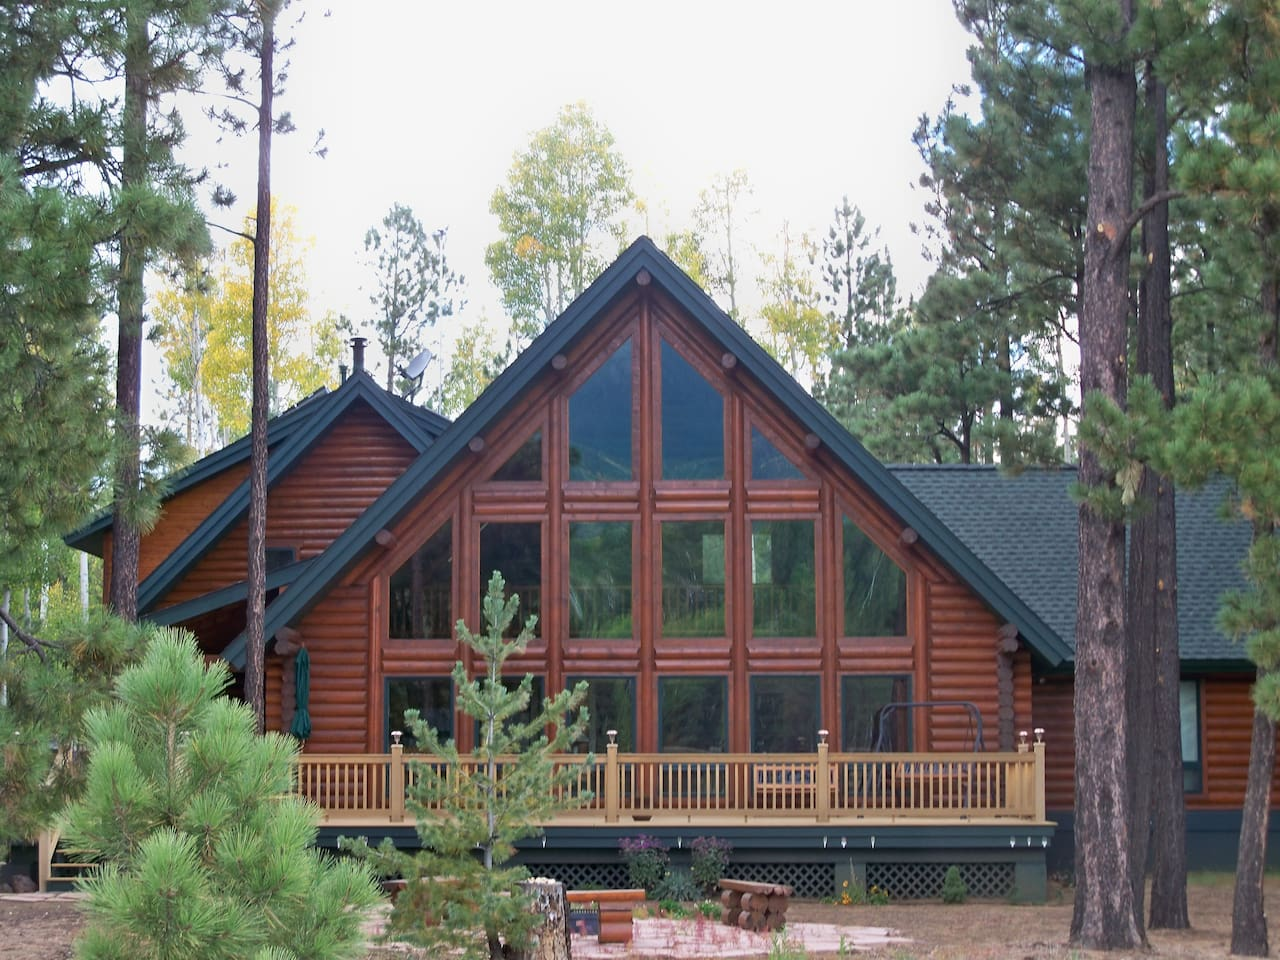 Gorgeous log home in the cool pines and aspens of Northern Arizona.